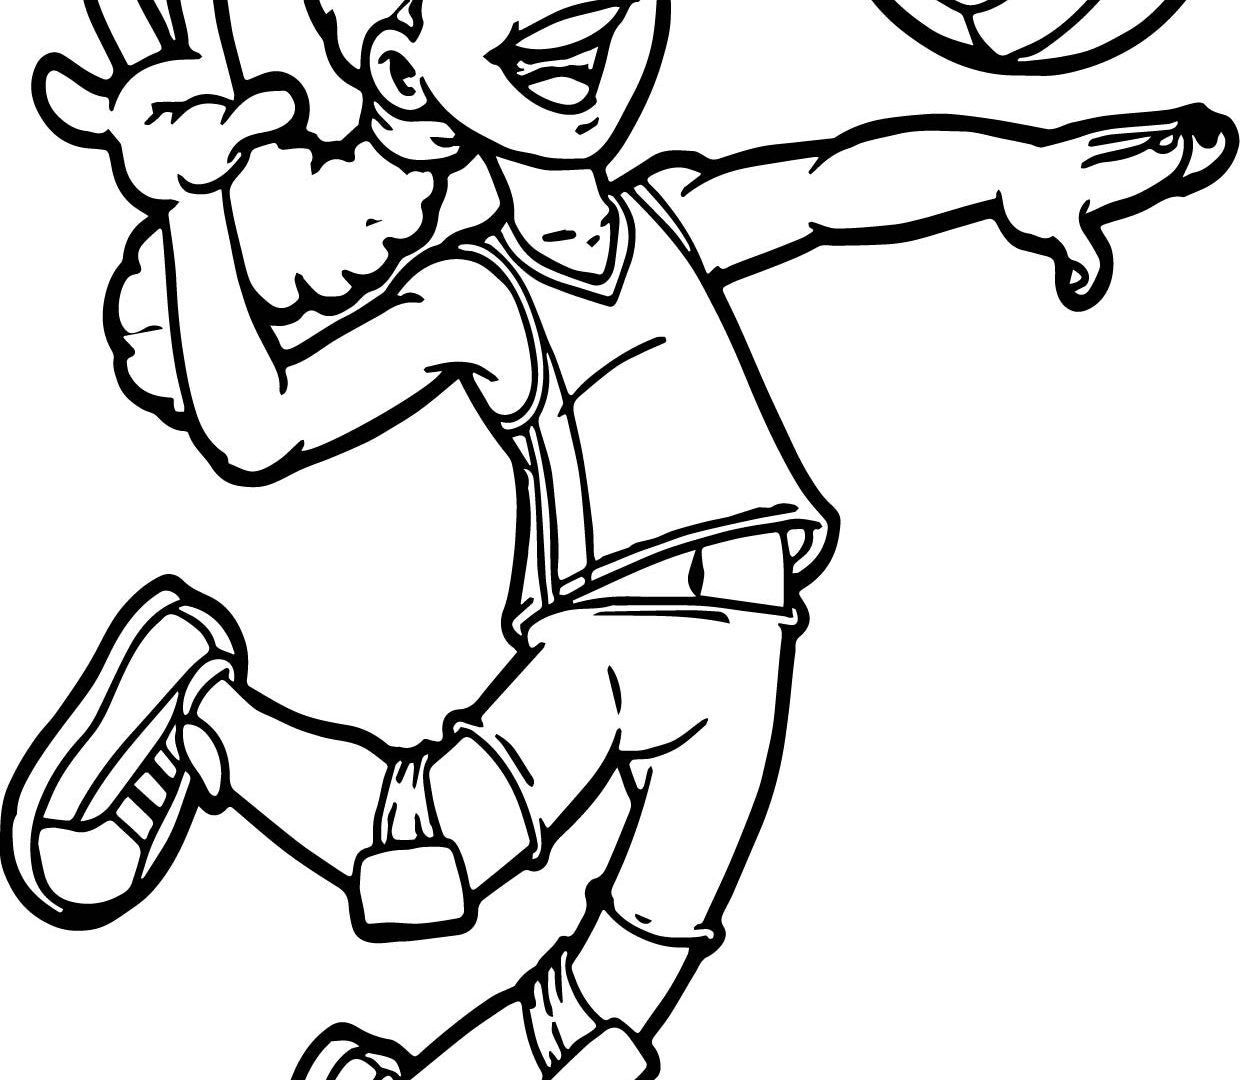 1240x1080 Impressive Picture Of A Volleyball For Coloring Page Best And